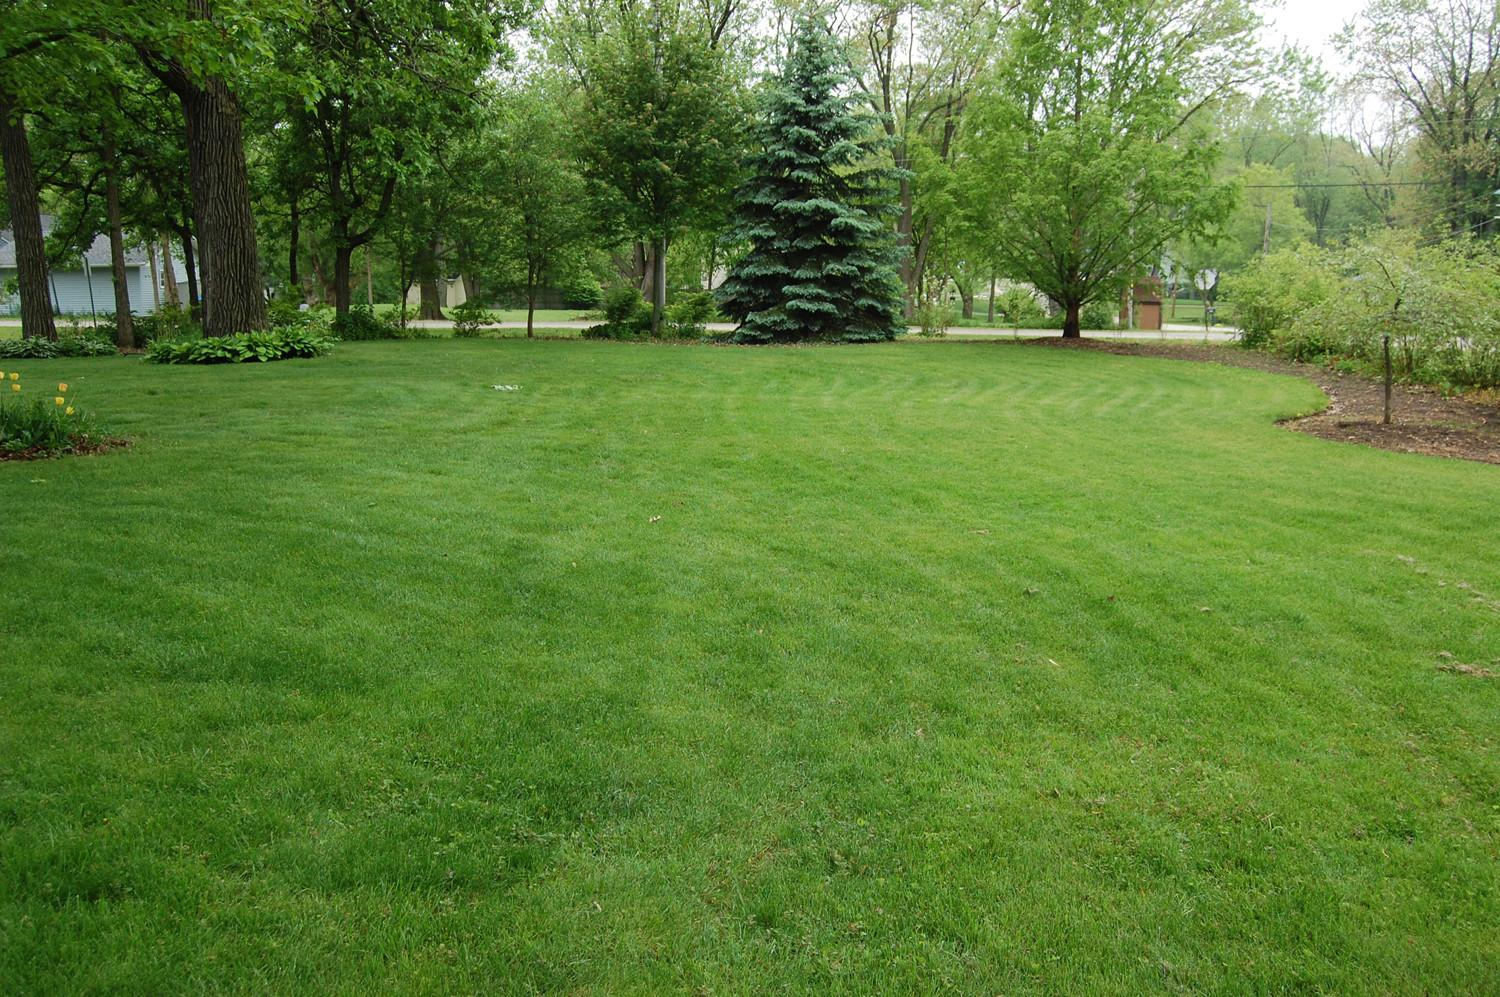 Struggling Lawn Care Braintree Professionals Can